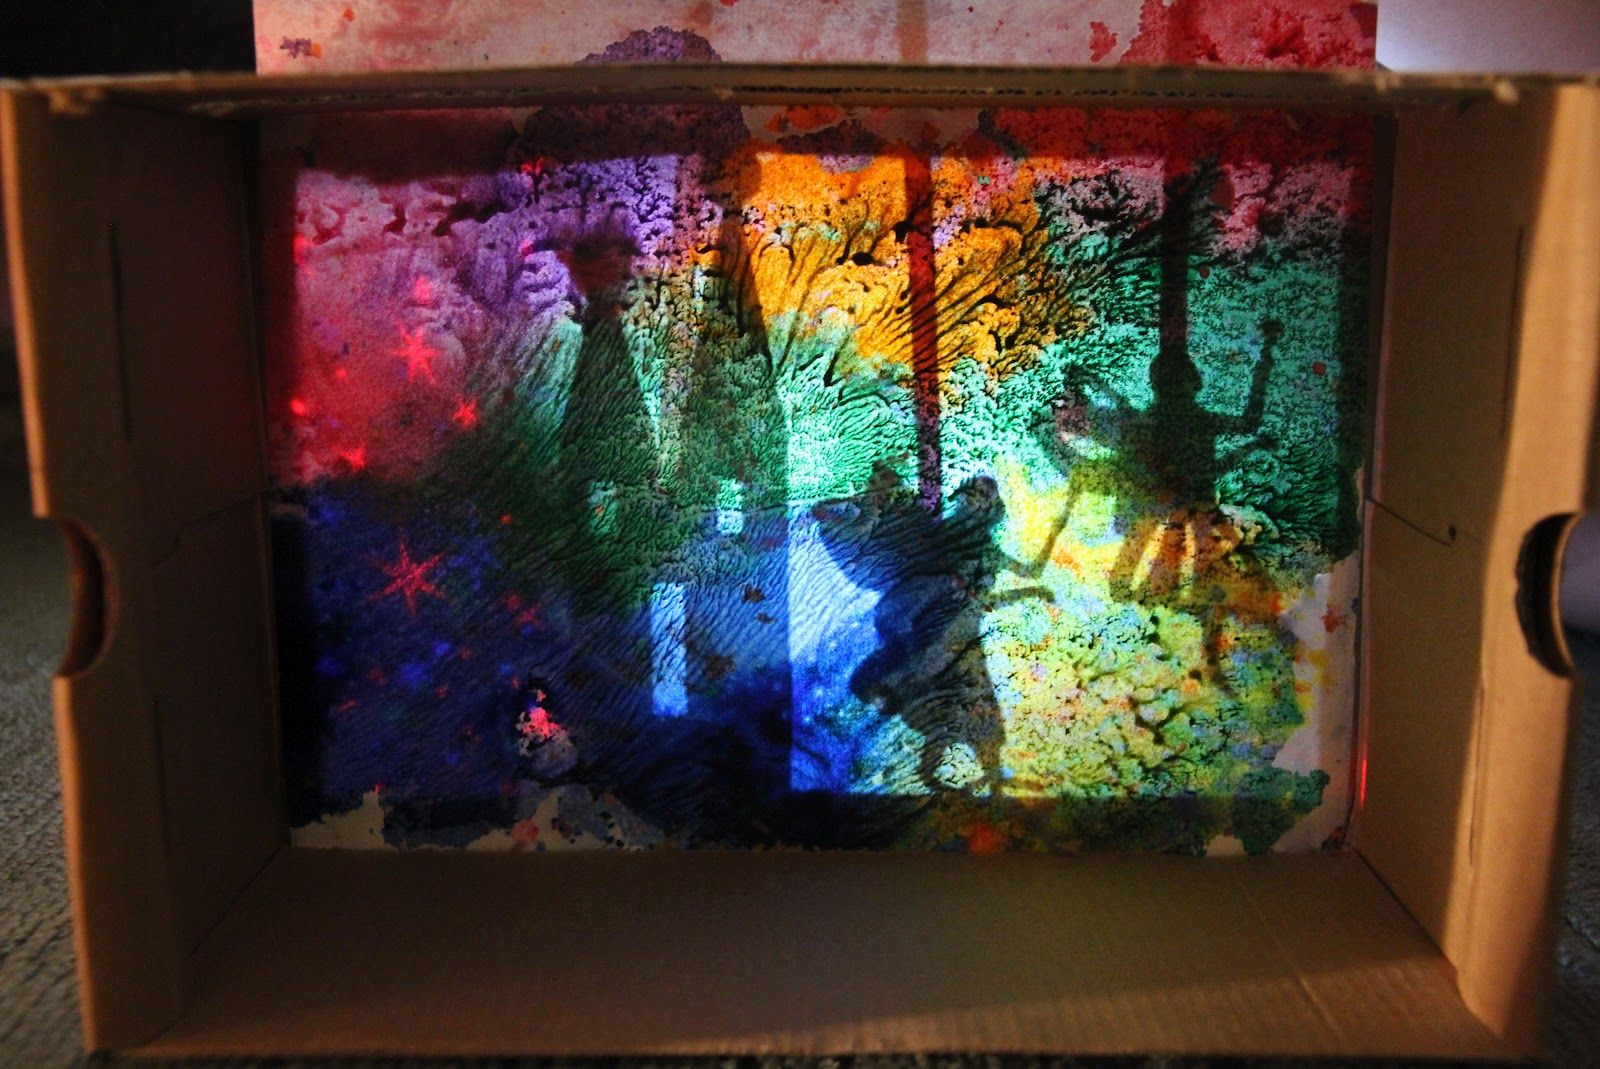 Shadow boxes with melted crayon shavings as the shadow paper. Beautiful and whimsical!